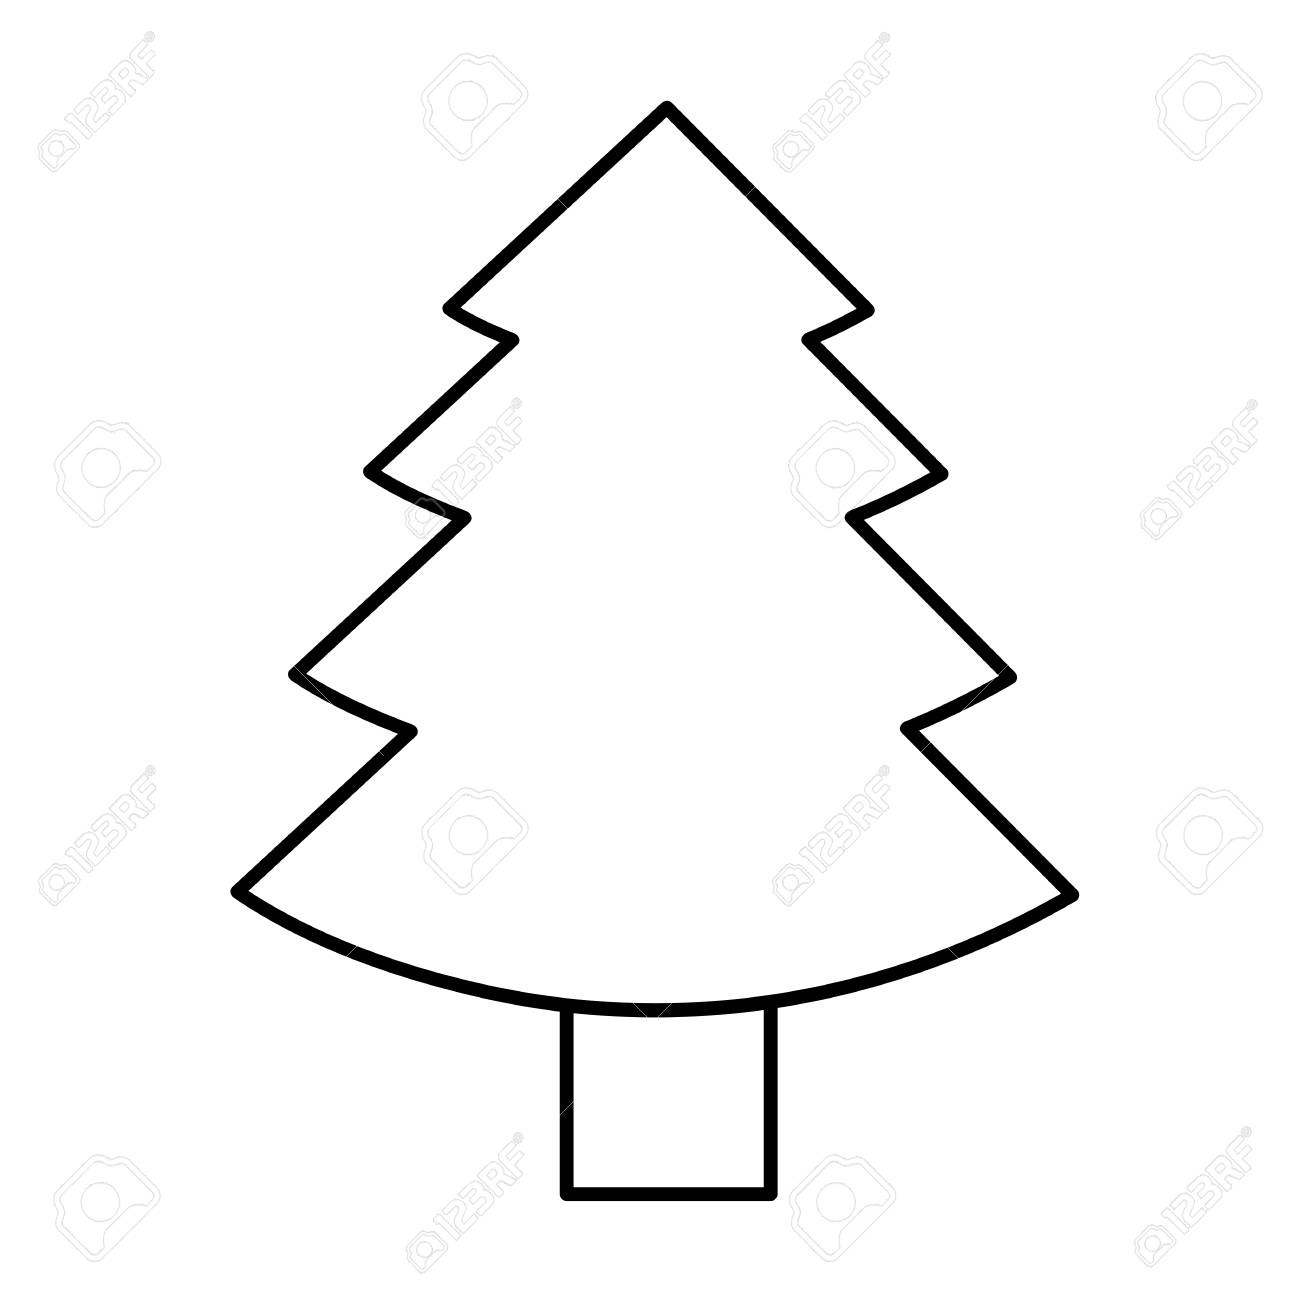 Christmas Tree Fir Simple Icon Pictogram Outline Vector Illustration Royalty Free Cliparts Vectors And Stock Illustration Image 113456986